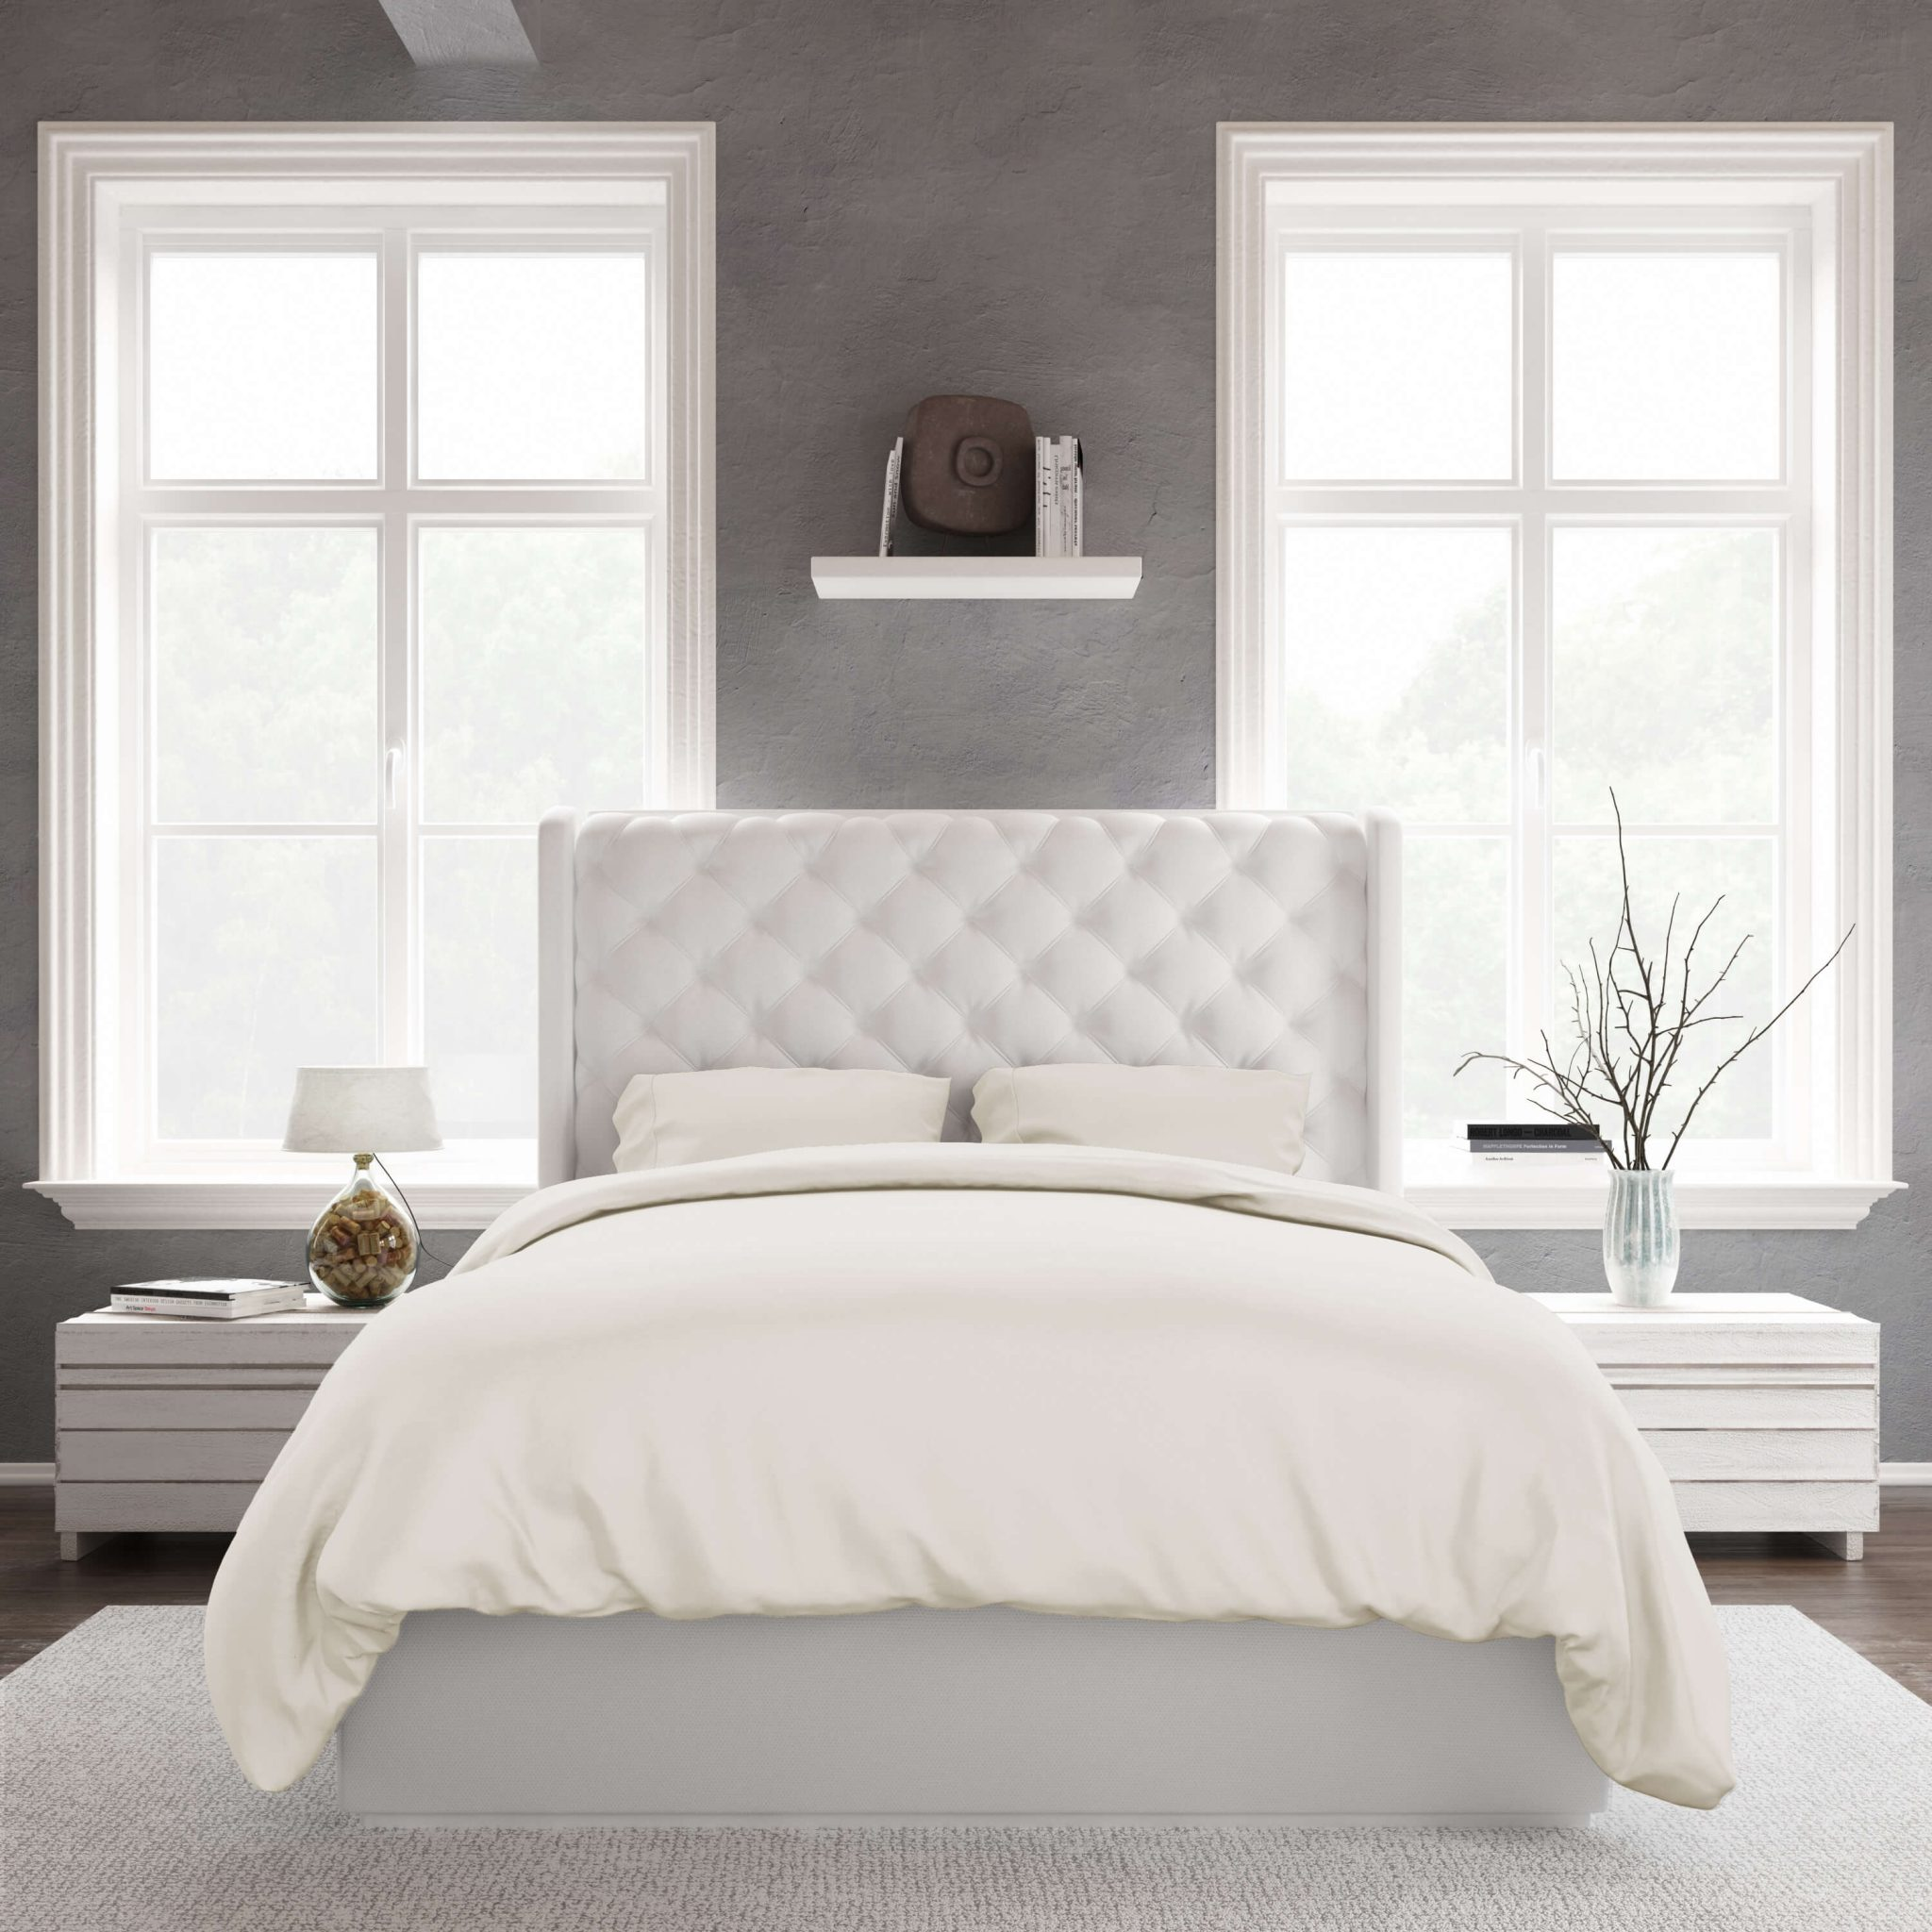 Bamboo Duvet Covers King Size Amp Queen Size Ivory